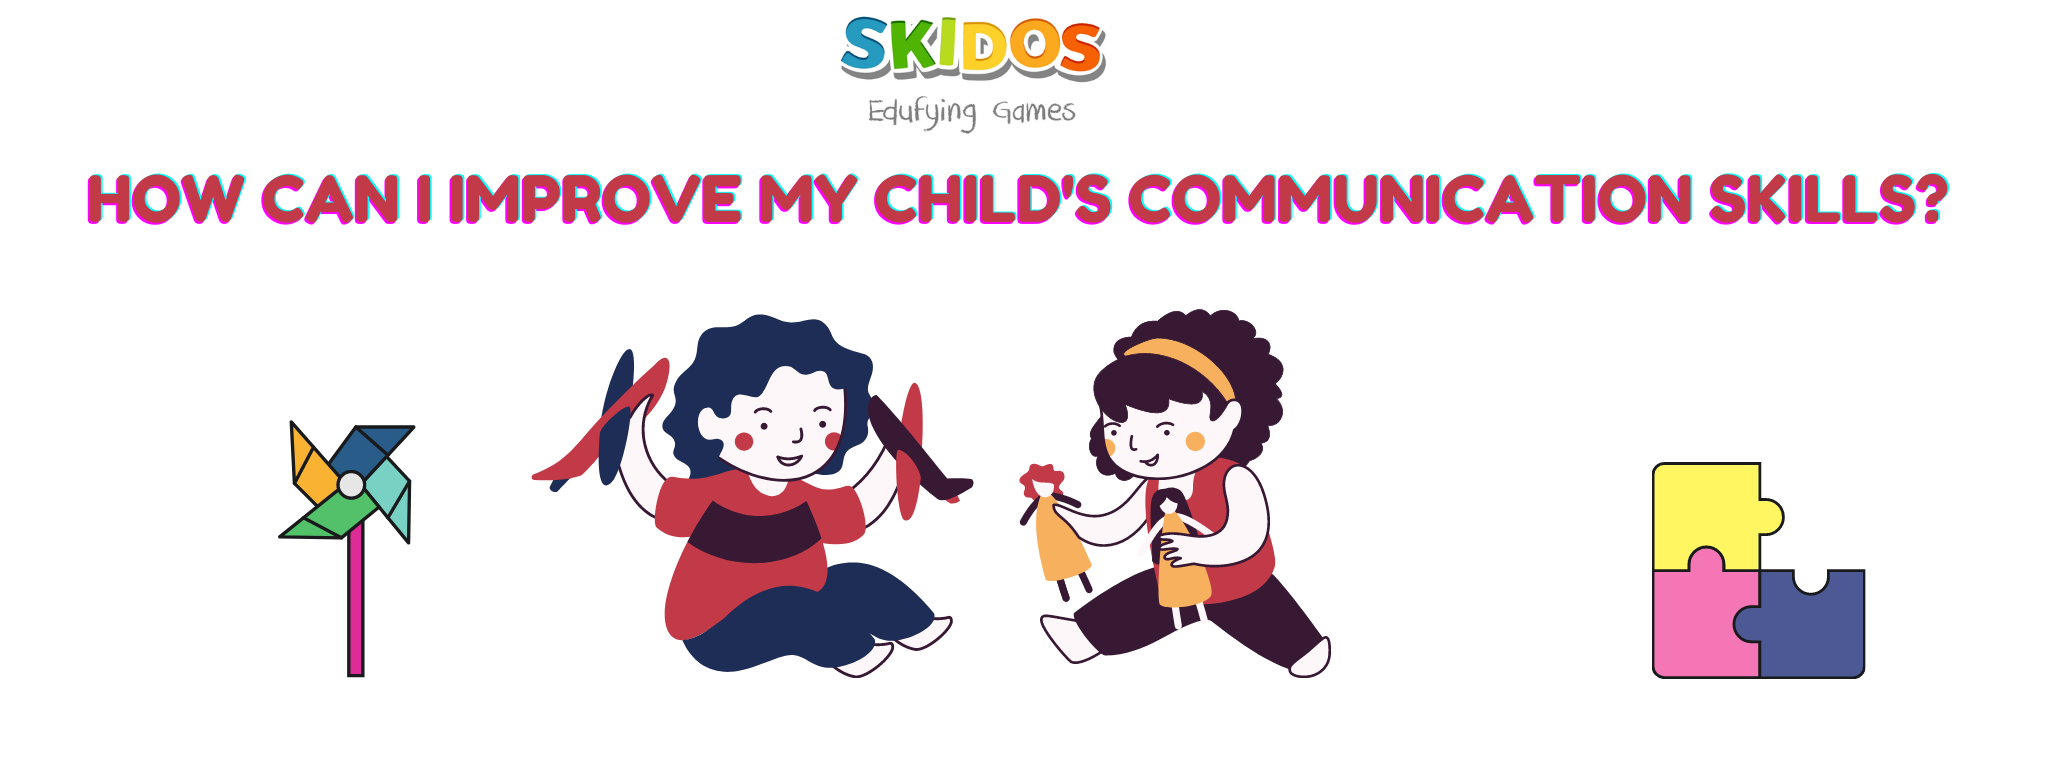 communication skills activities, games for kids